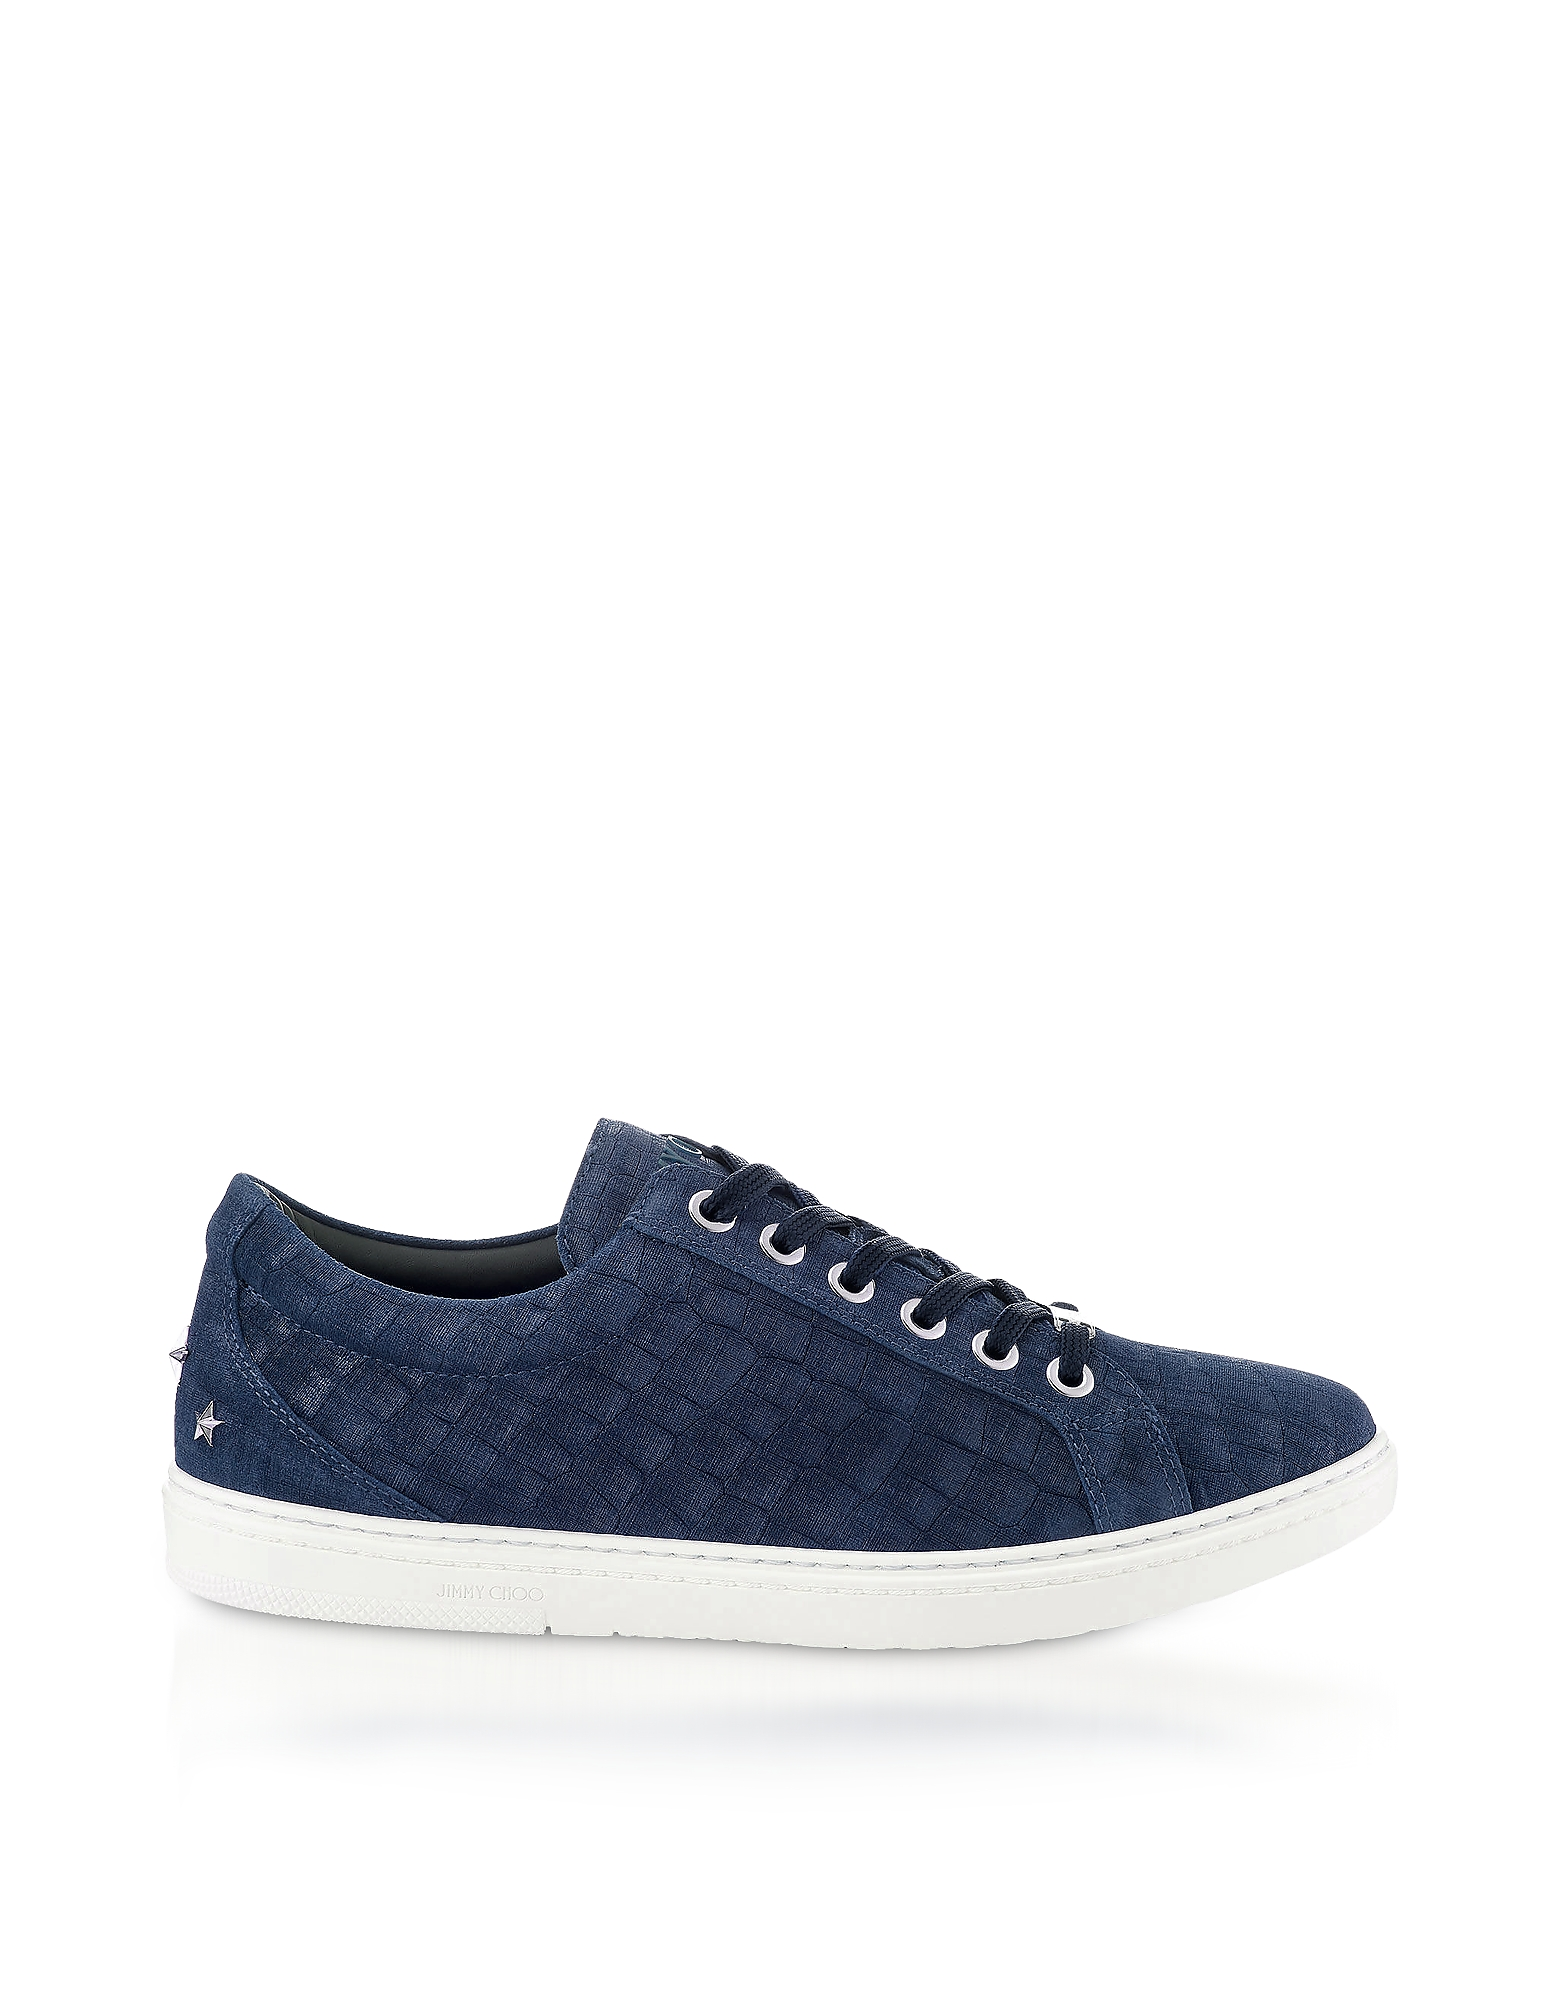 Cash Navy Croco Print Denim Leather Low Top Trainers